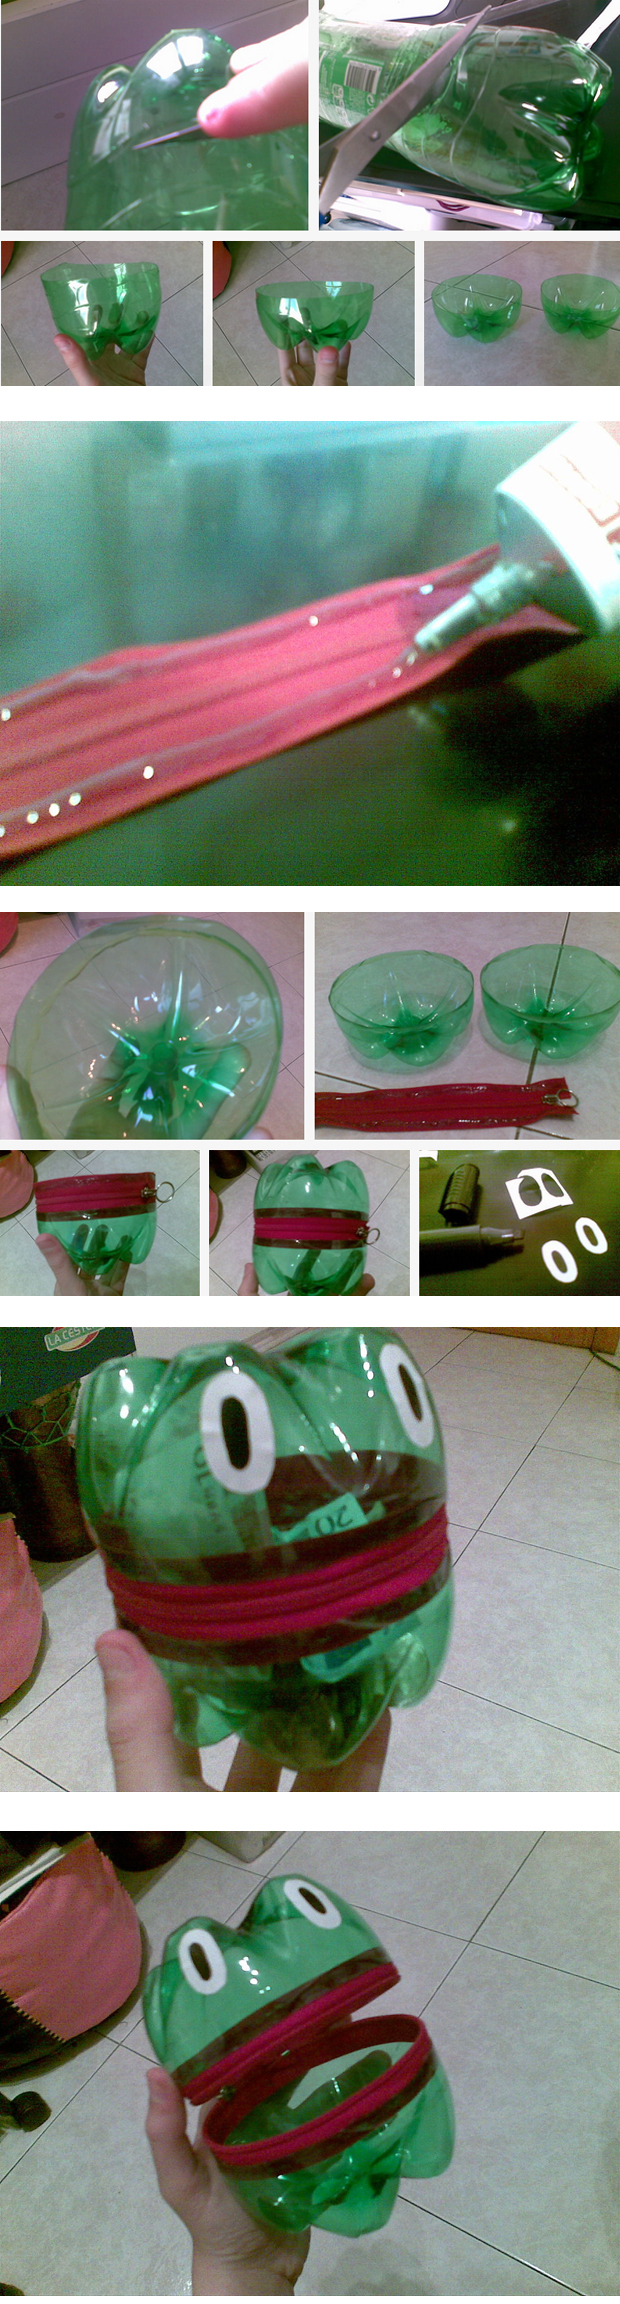 6 best ideas for using old waste plastic bottles crafts for Craft using waste bottles